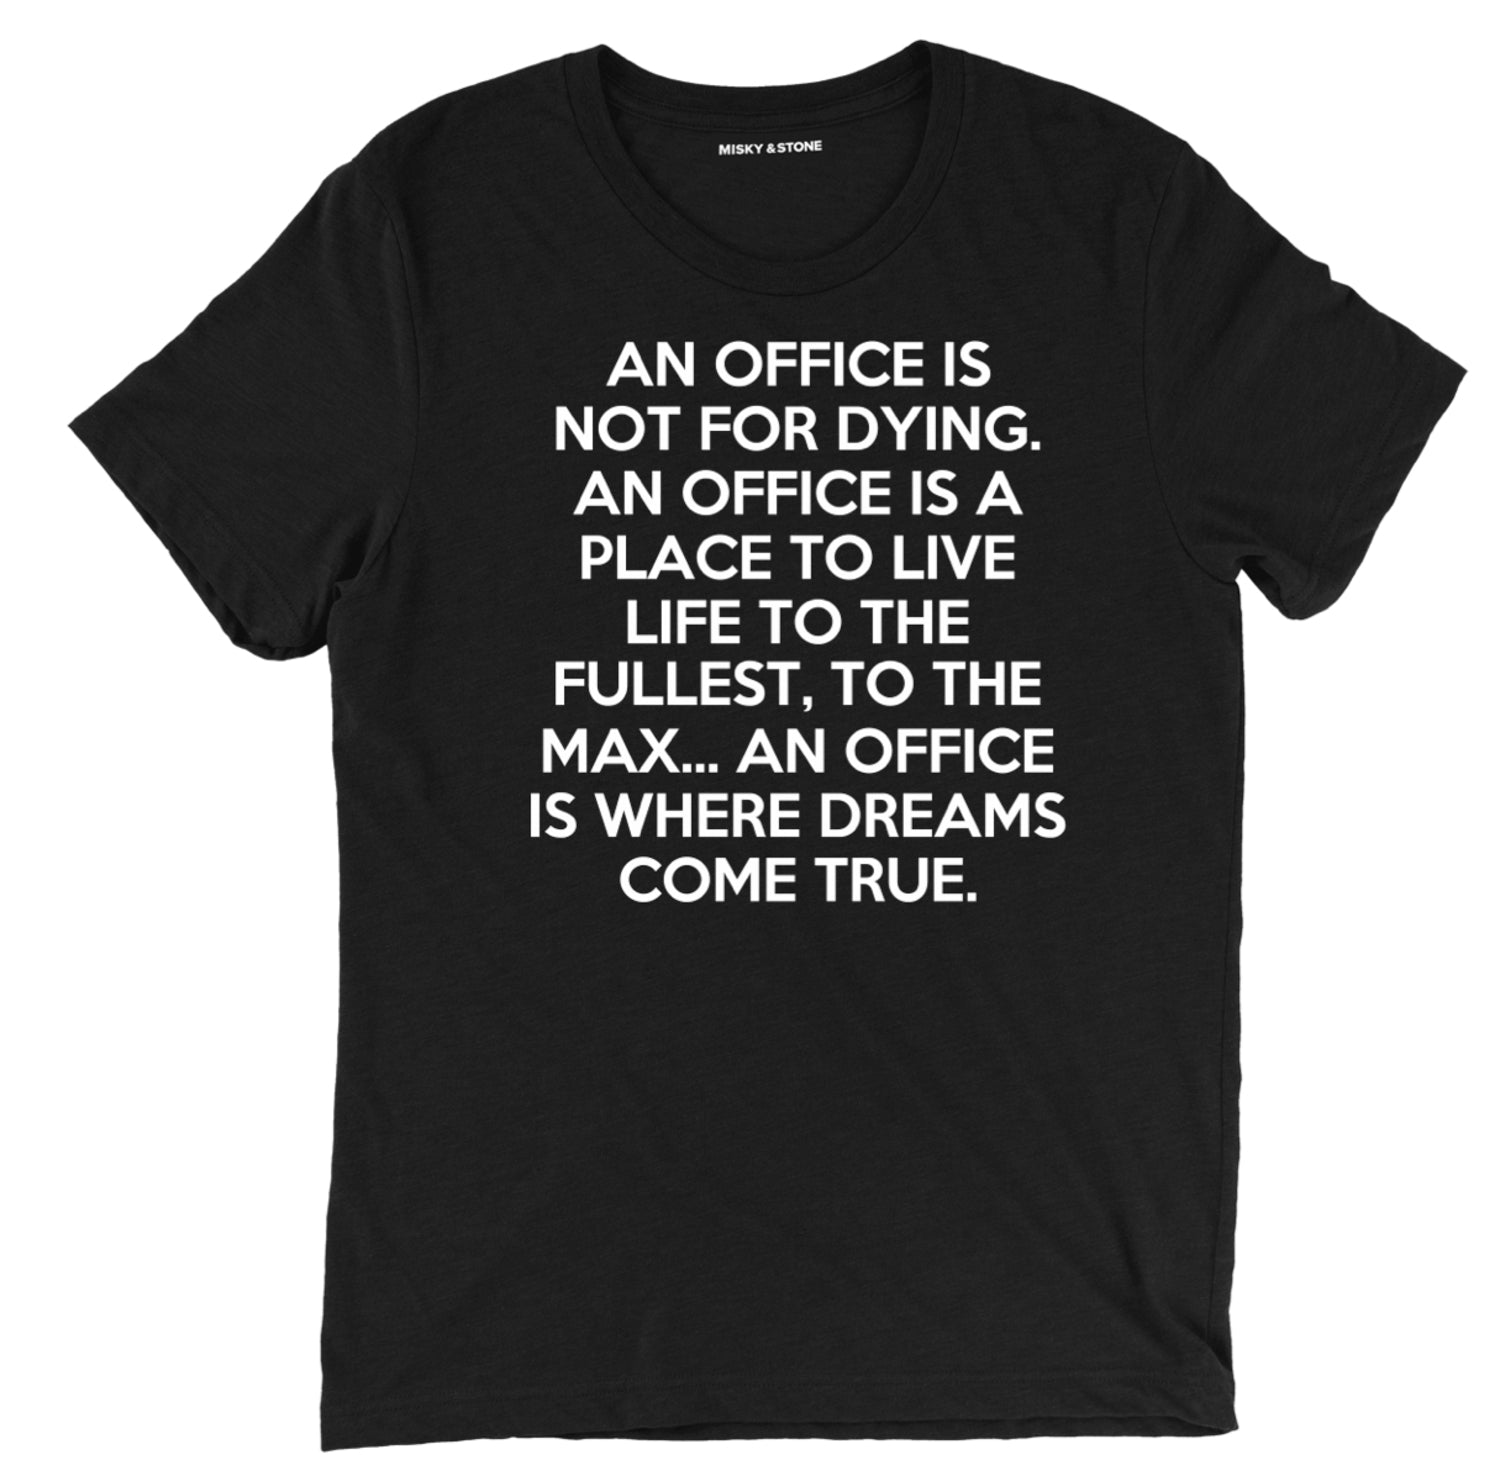 an office is where dreams come true the office tee, an office is a place to live life to its fullest tee, the office t shirt,  michael scott shirt, michael scott t shirt